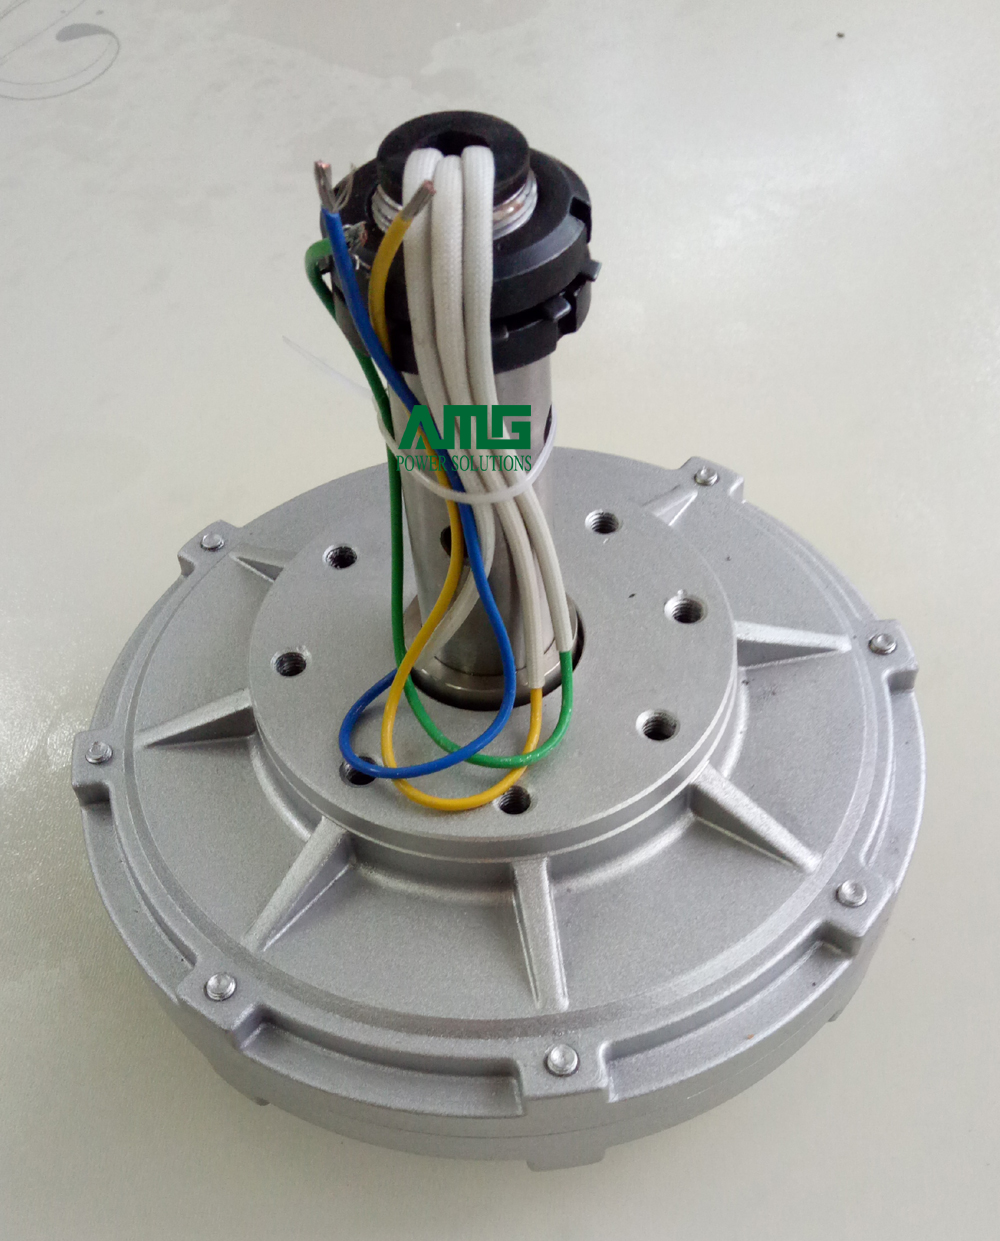 100W 130 200 300 500RPM 12 24 48VDC Low RPM Low RPM Low Start Up Torque Vertical Alternator